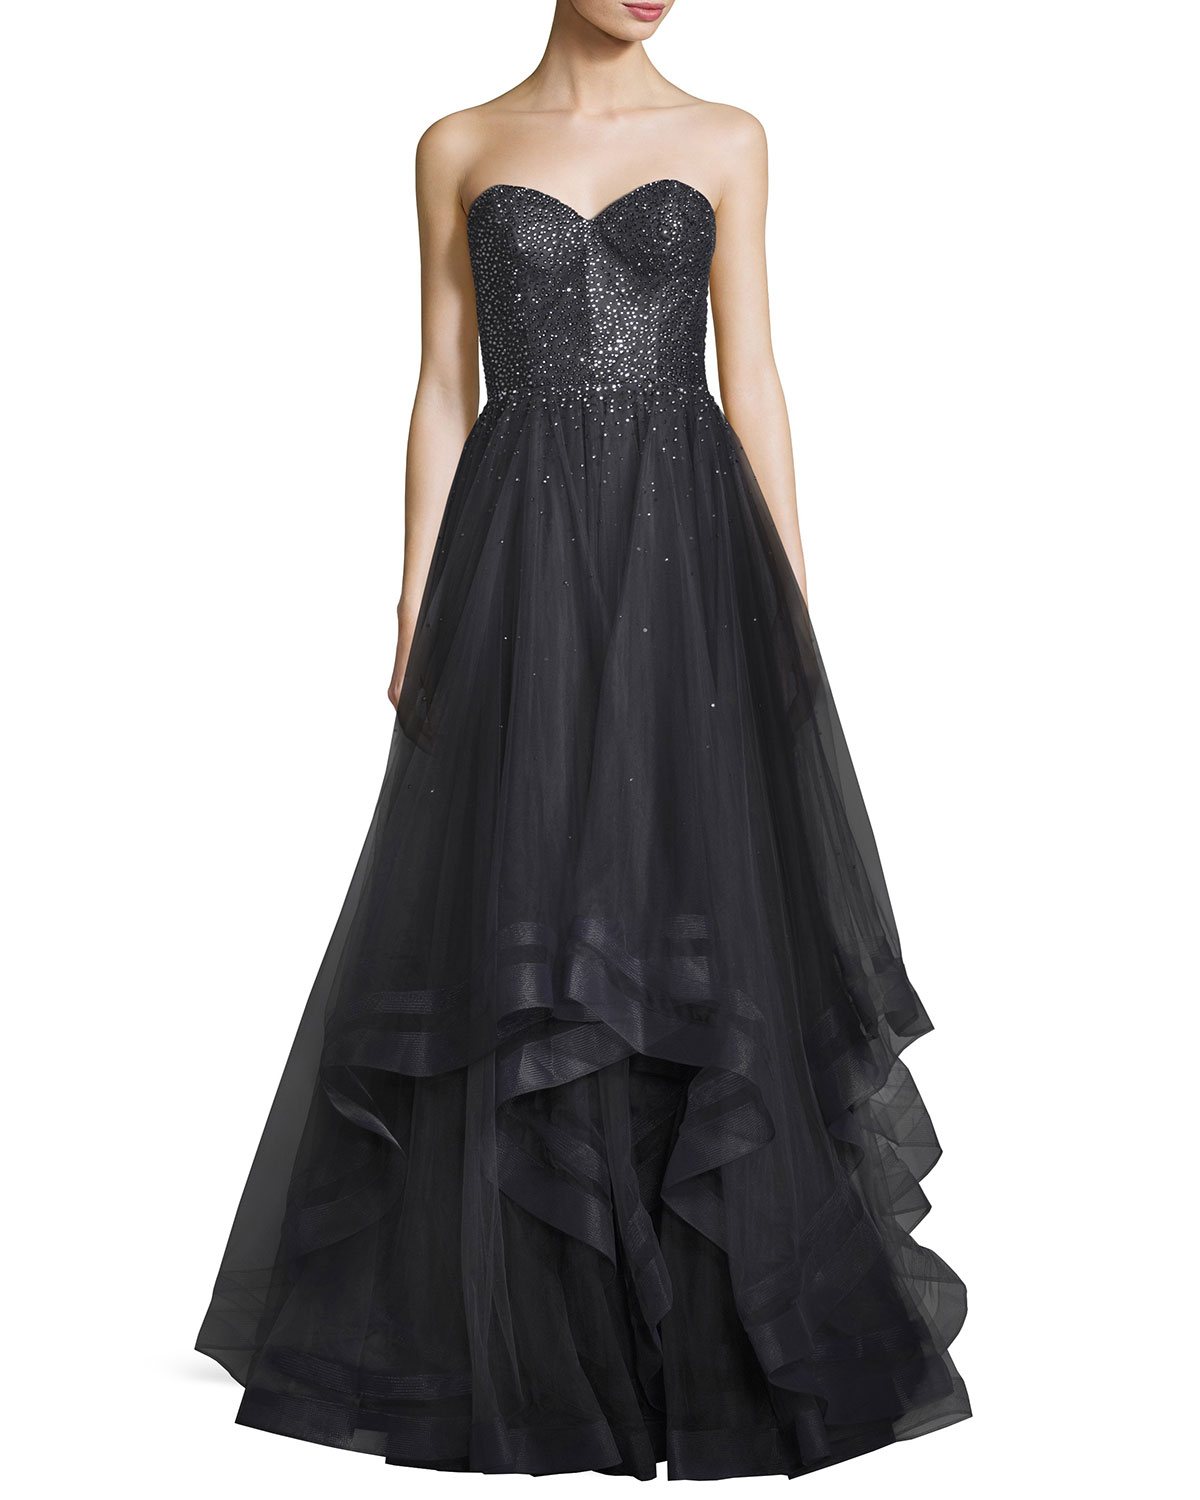 La Femme Strapless Sweetheart Tulle Ball Gown, Gray | Neiman Marcus